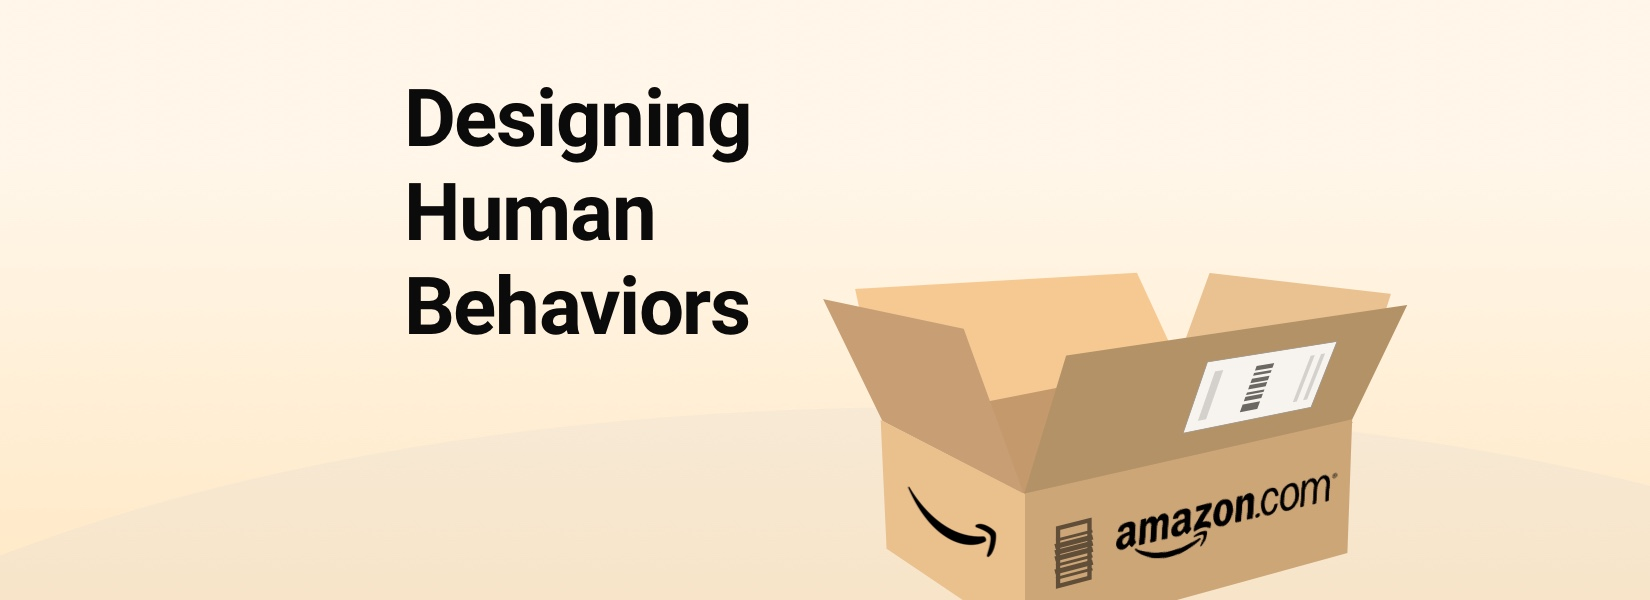 Designing Human Behaviors: Part One